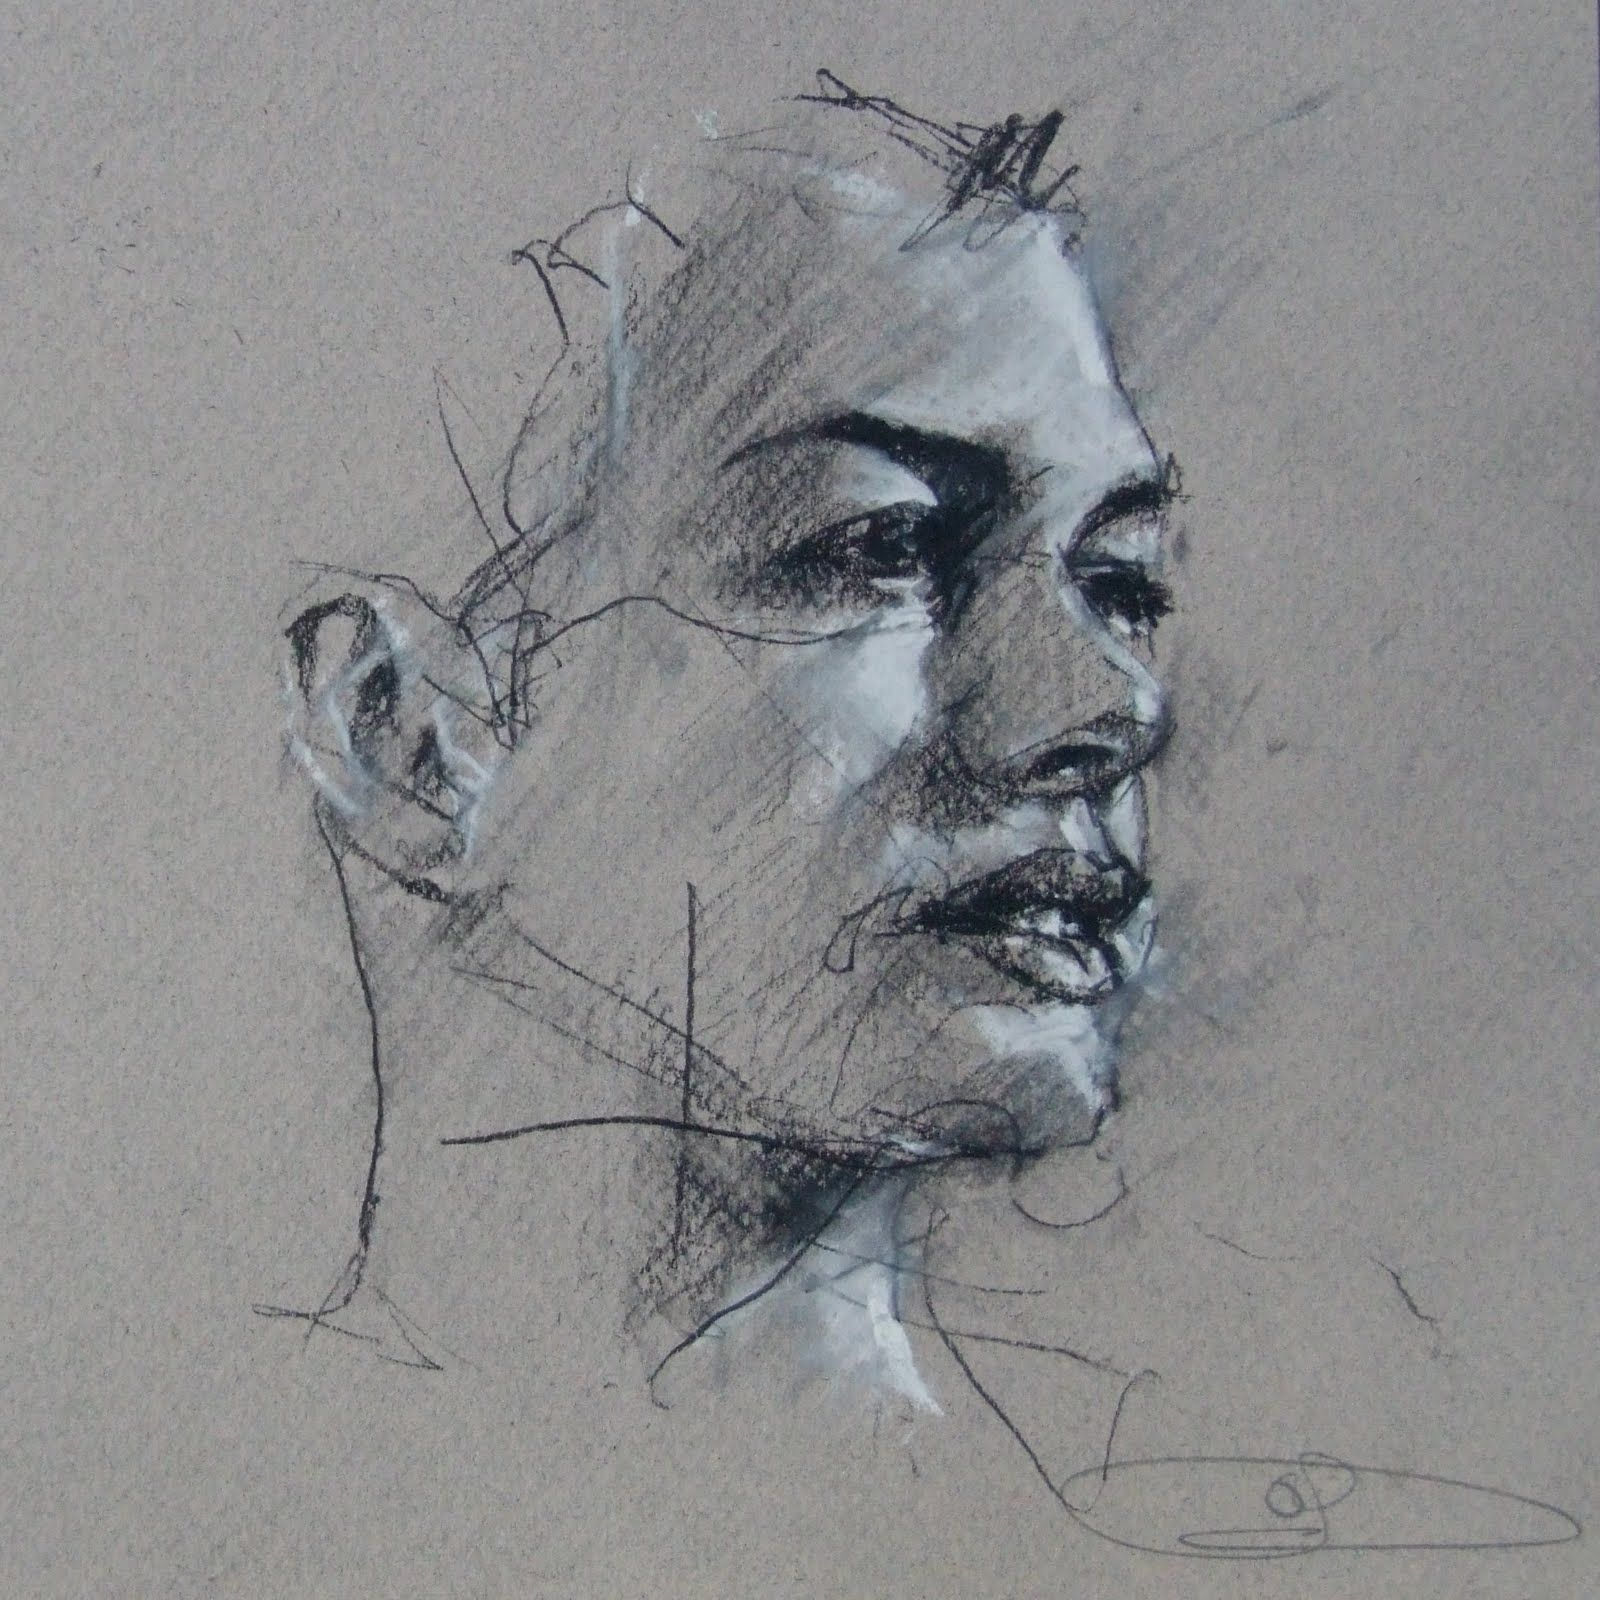 Guy Denning | drawing | Pinterest | Drawings, Portraits ...